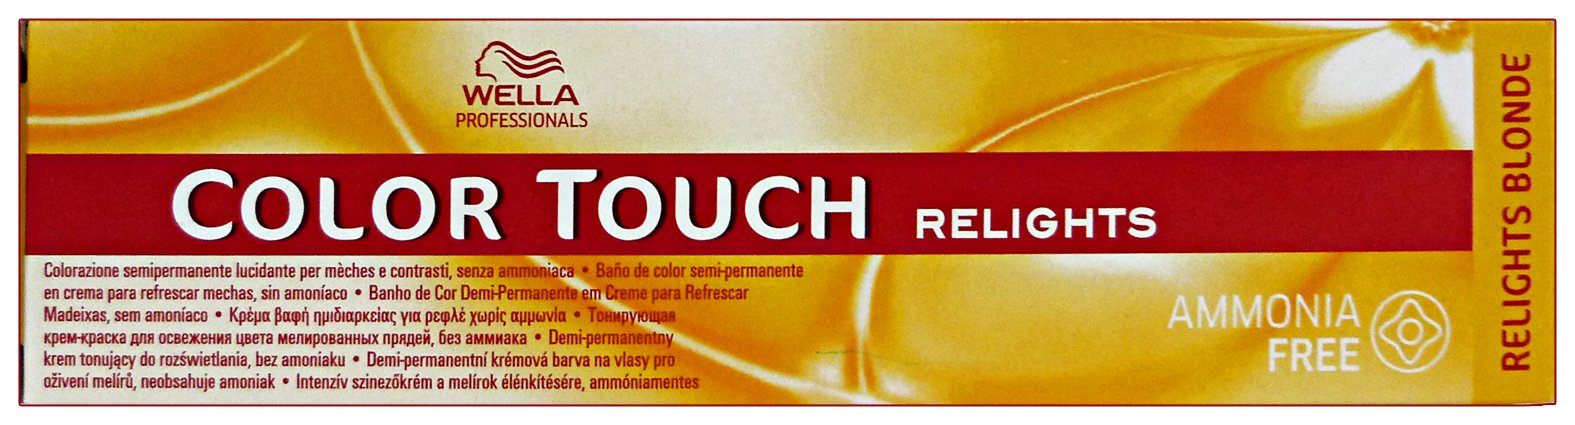 WELLA Number 00 Relights Colour Touch